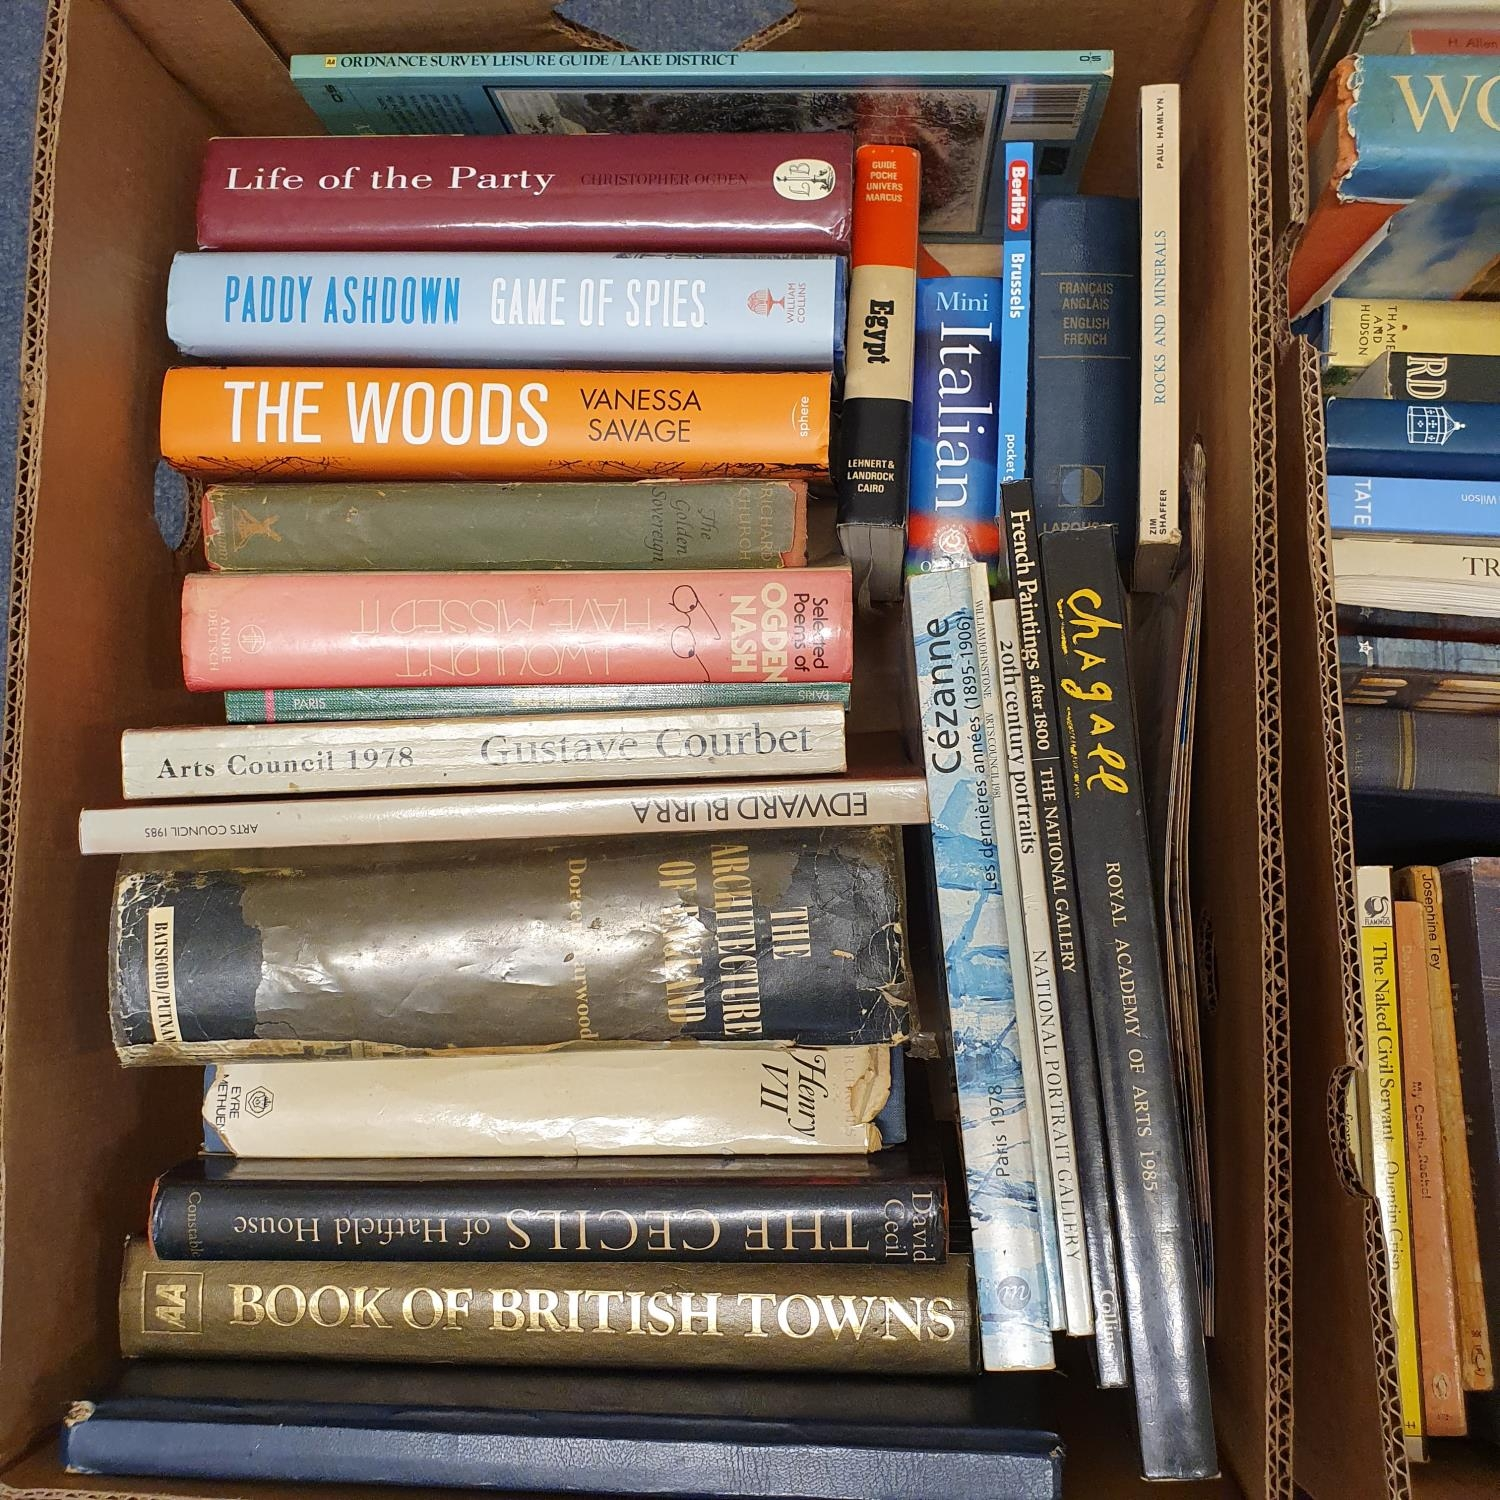 Hibbert (Christopher) London, and a large group of other books (19 boxes) - Image 16 of 21